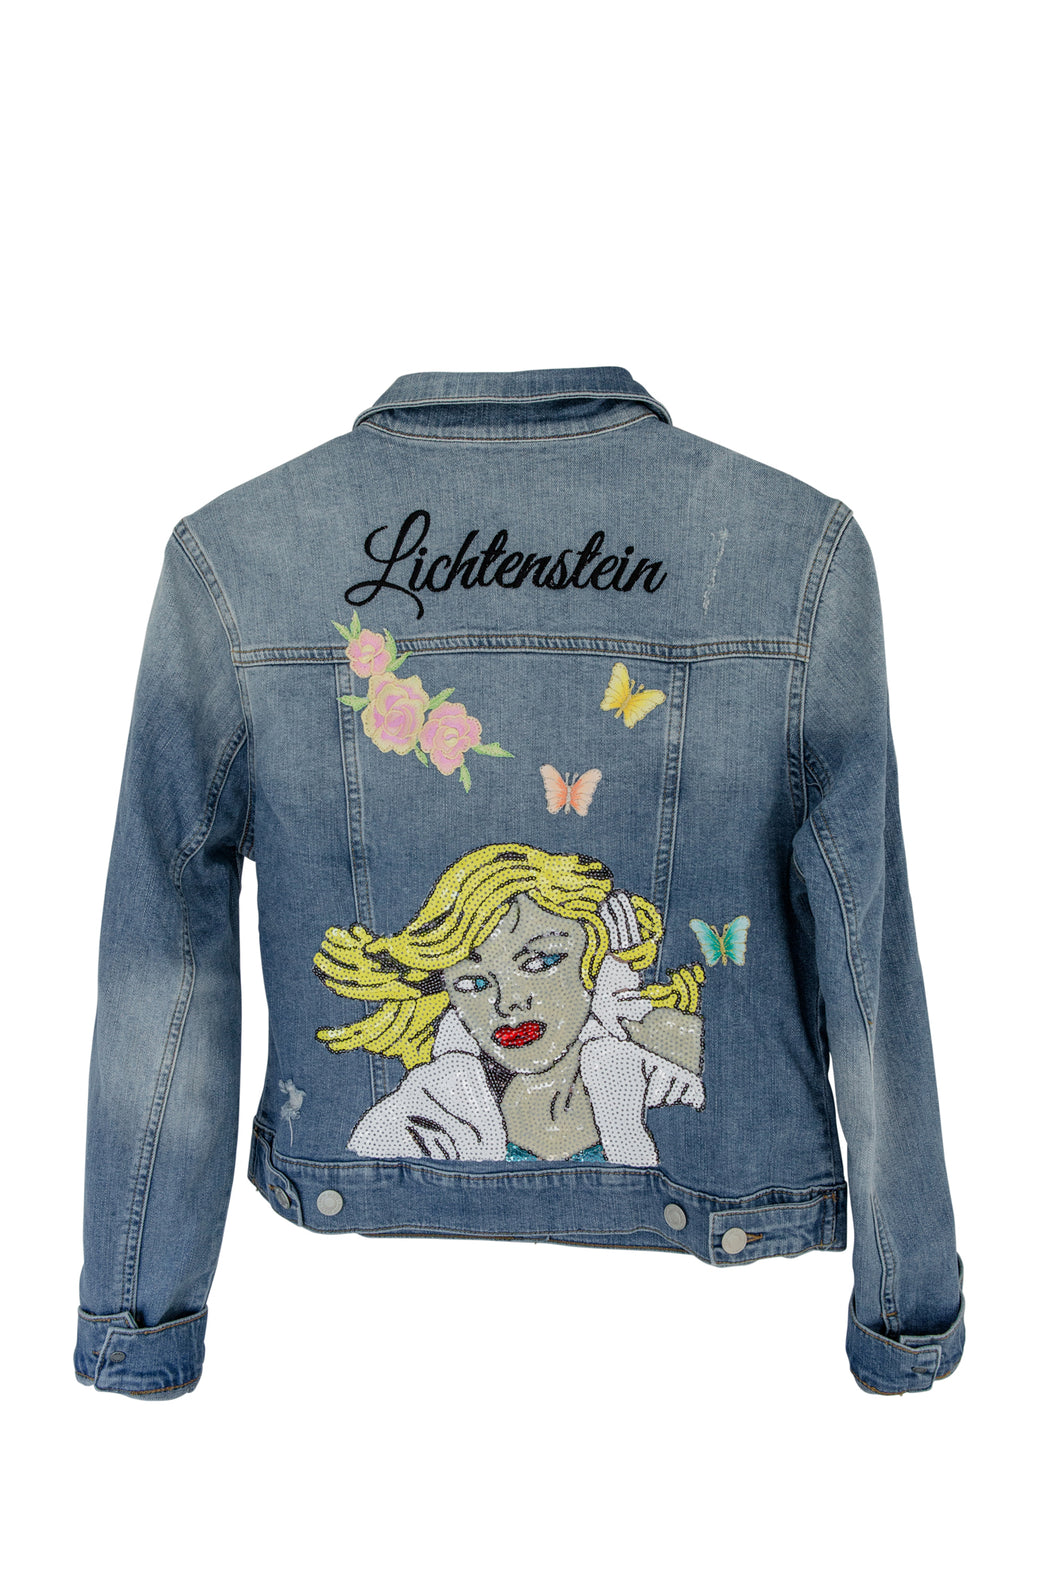 Montana Goldberg Jean Jacket With Lichtenstein Motif